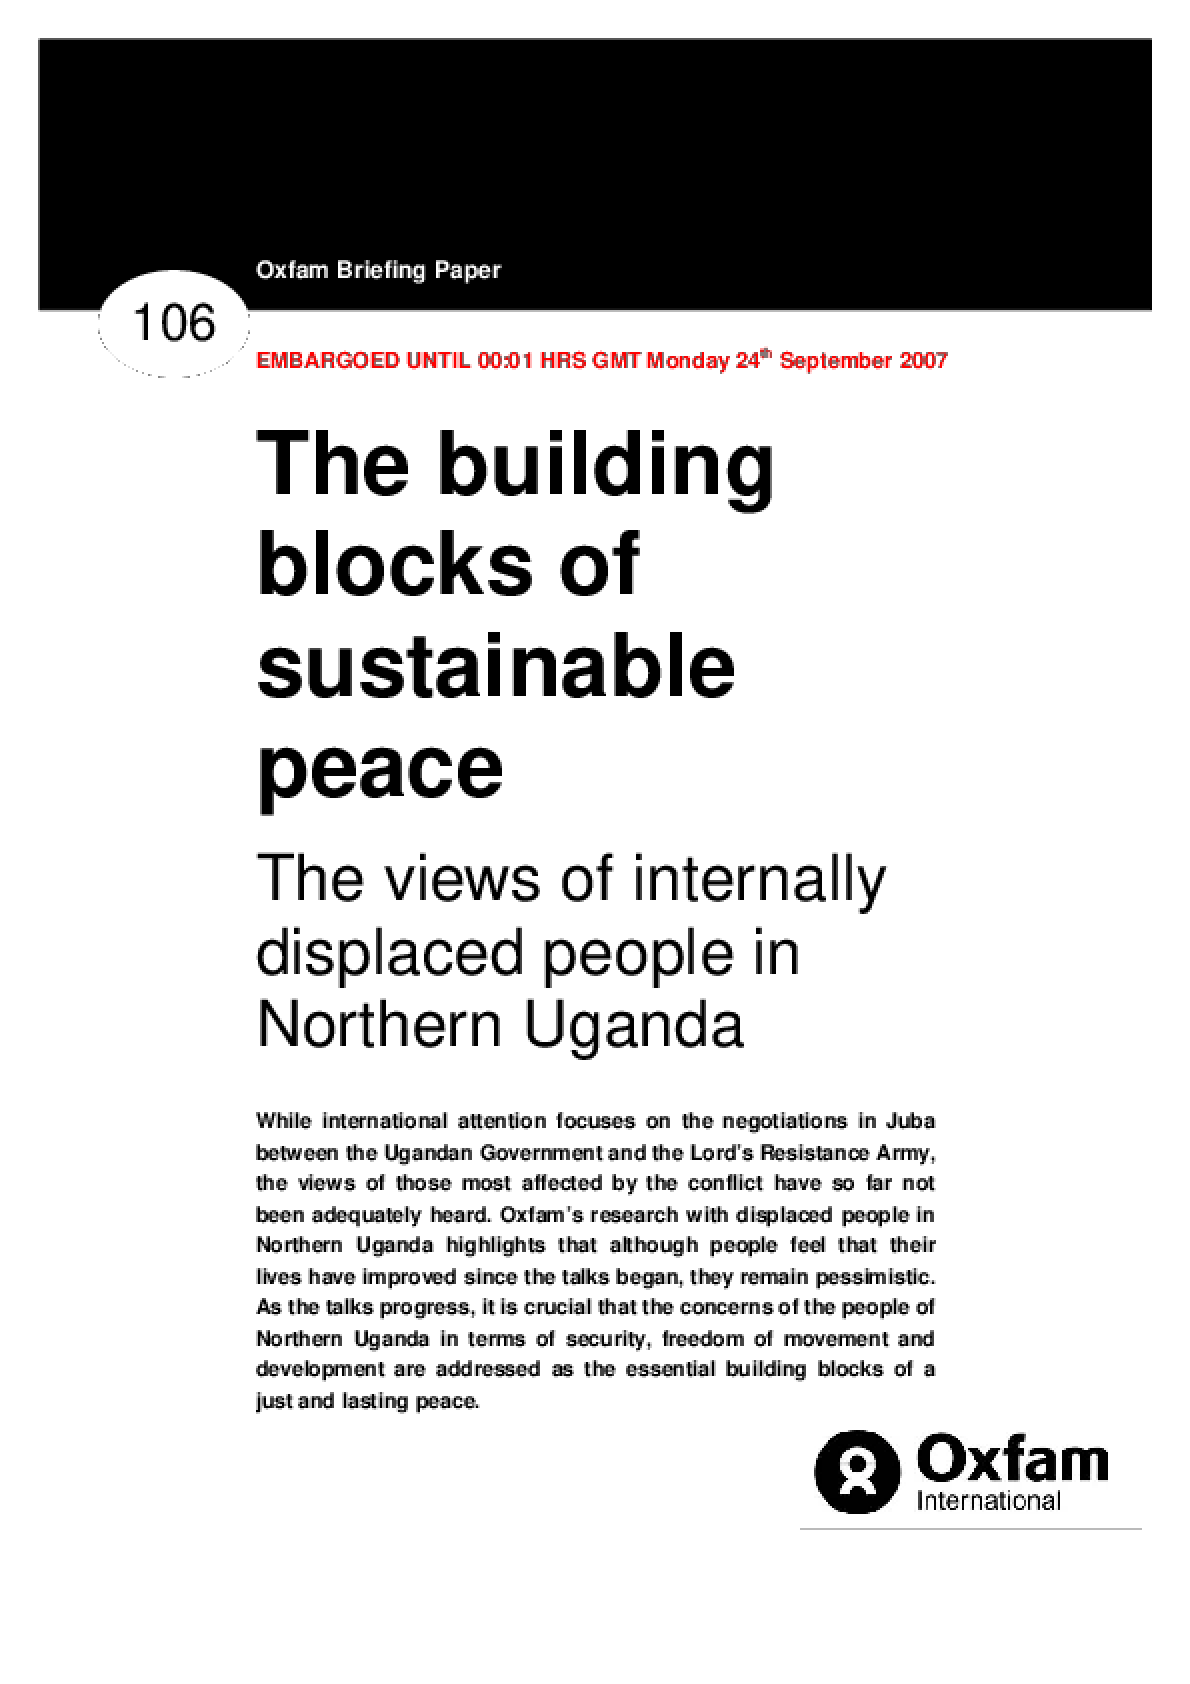 The Building Blocks of Sustainable Peace: The views of internally displaced people in Northern Uganda